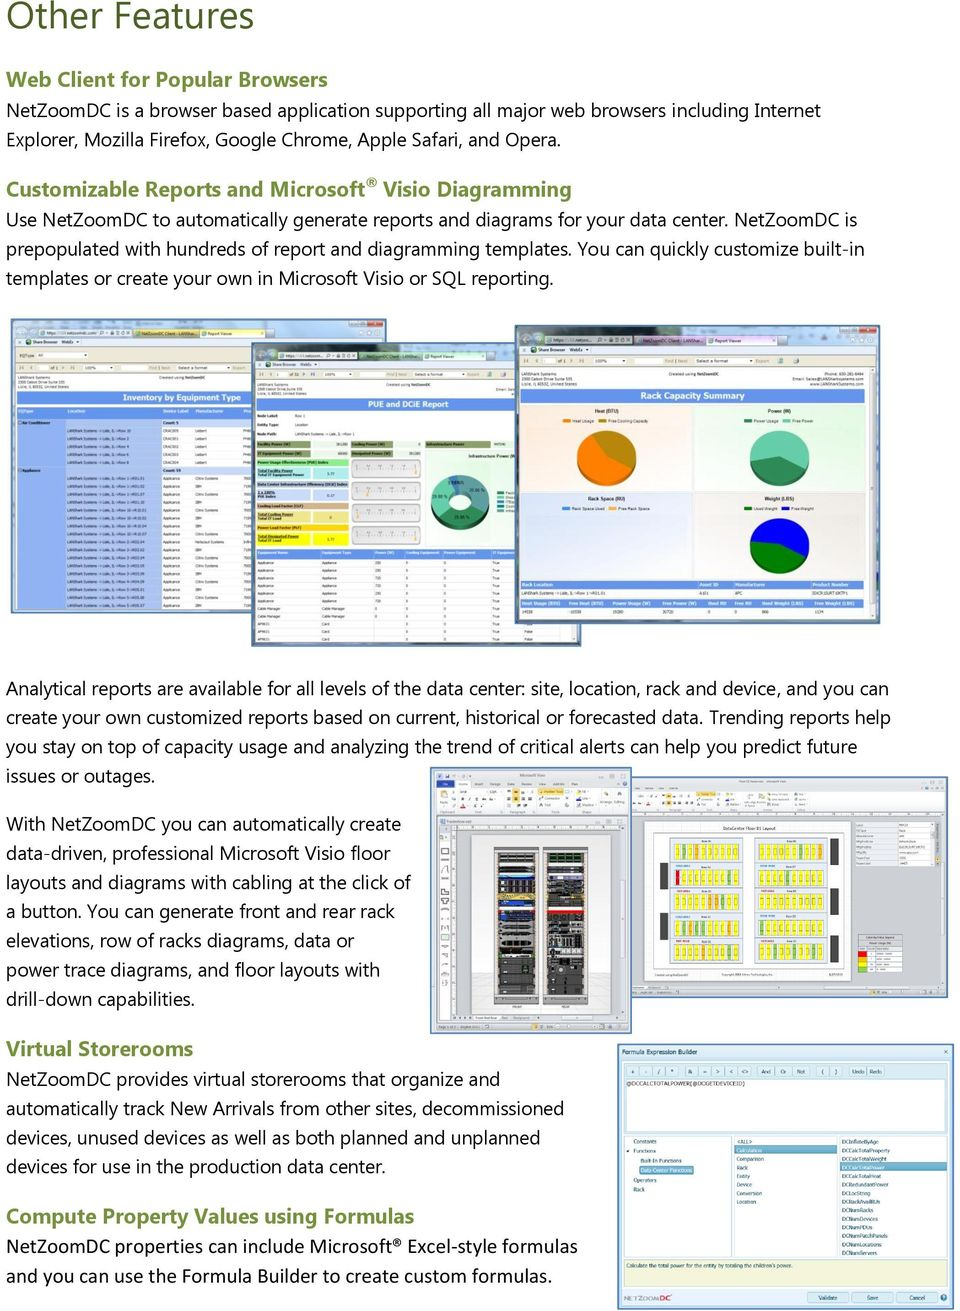 NetZoomDC is prepopulated with hundreds of report and diagramming templates. You can quickly customize built-in templates or create your own in Microsoft Visio or SQL reporting.